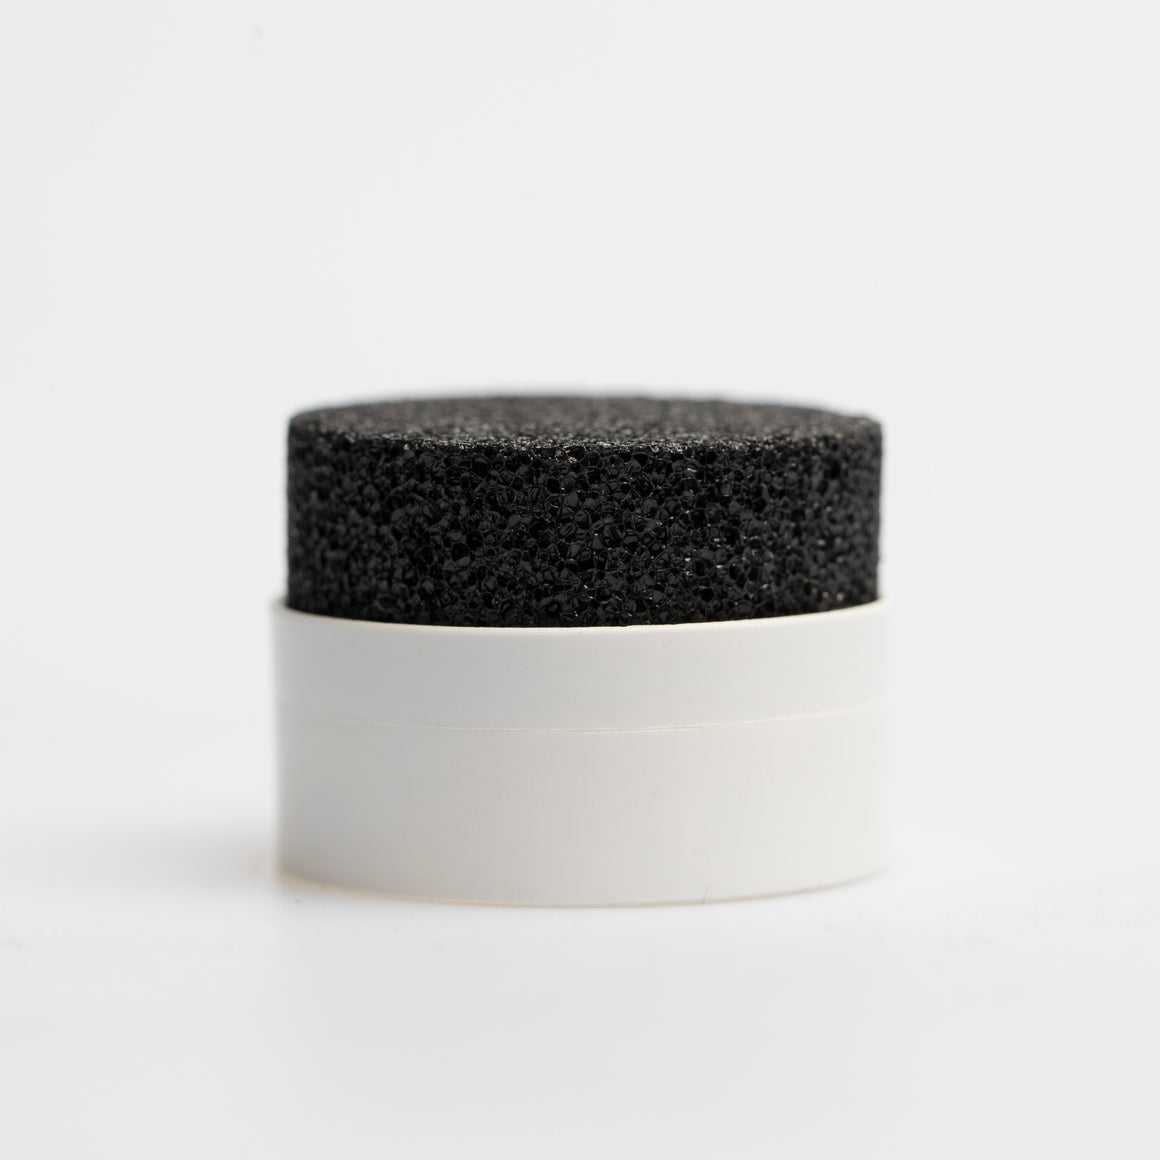 NordiCork Replacement Grip Wax Lid with Built-in Cork